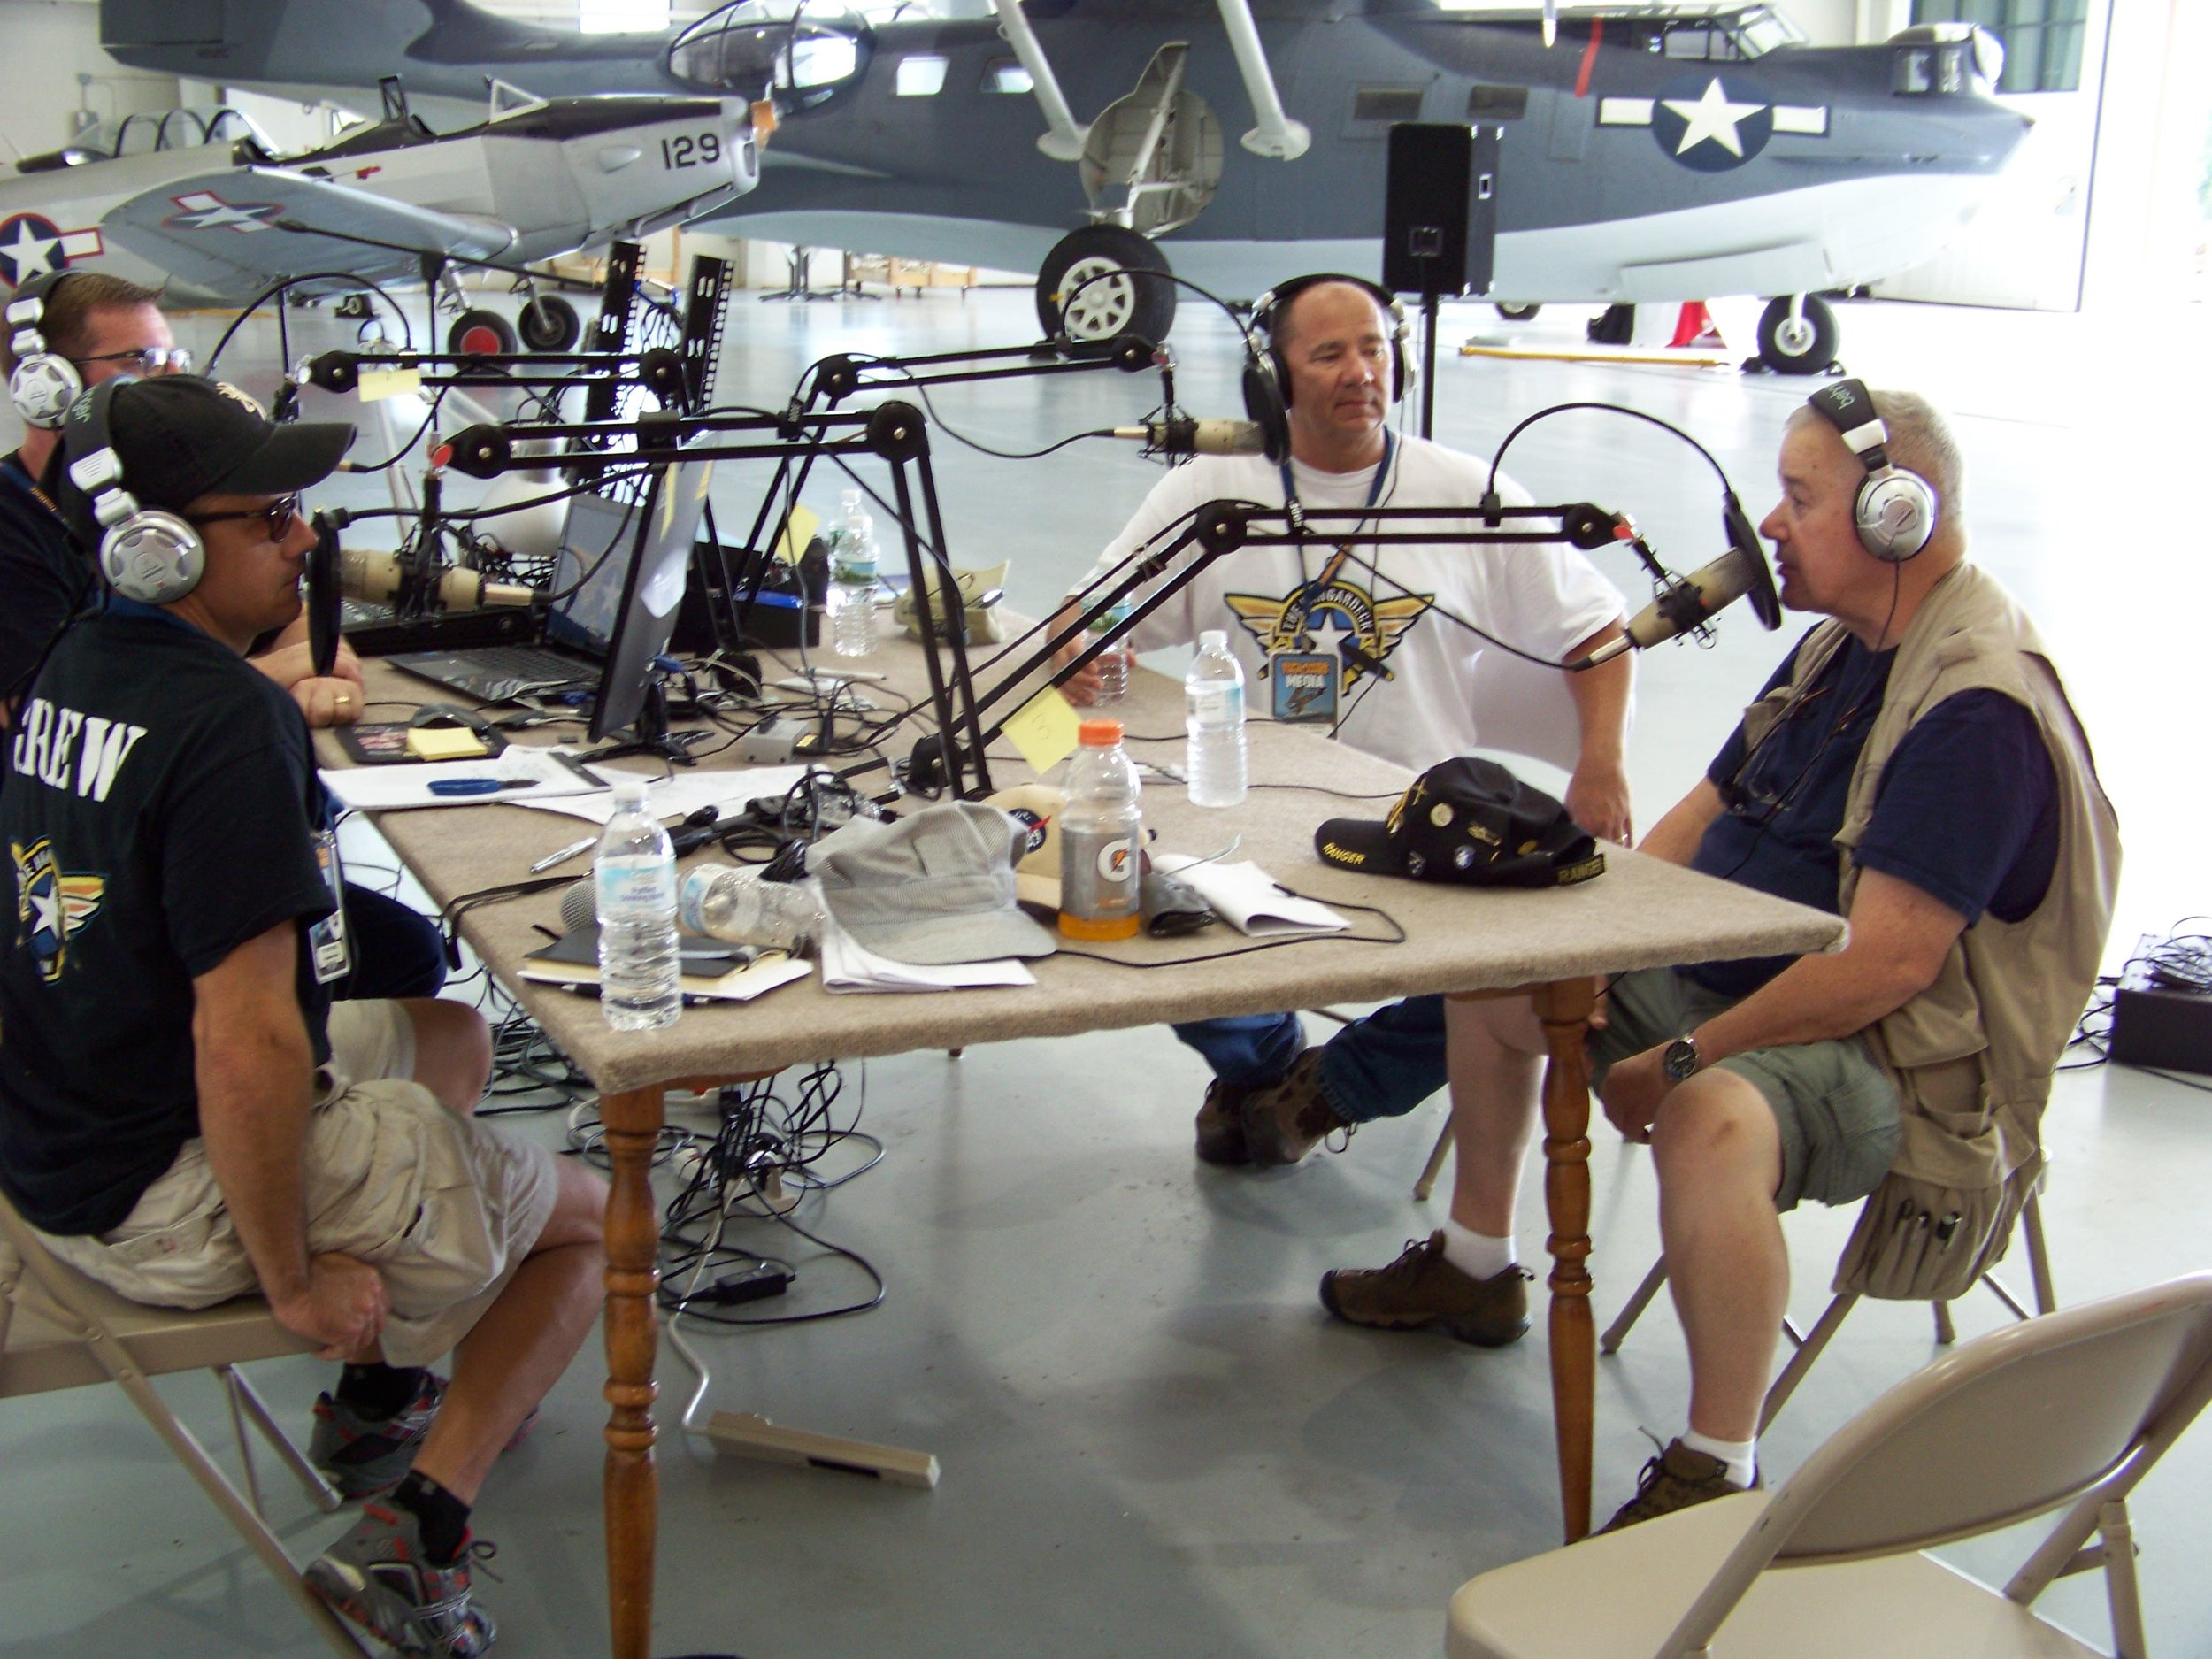 The Hangardeck Podcast team with Distinguished Flying Cross recipient Buzz Lockwood.